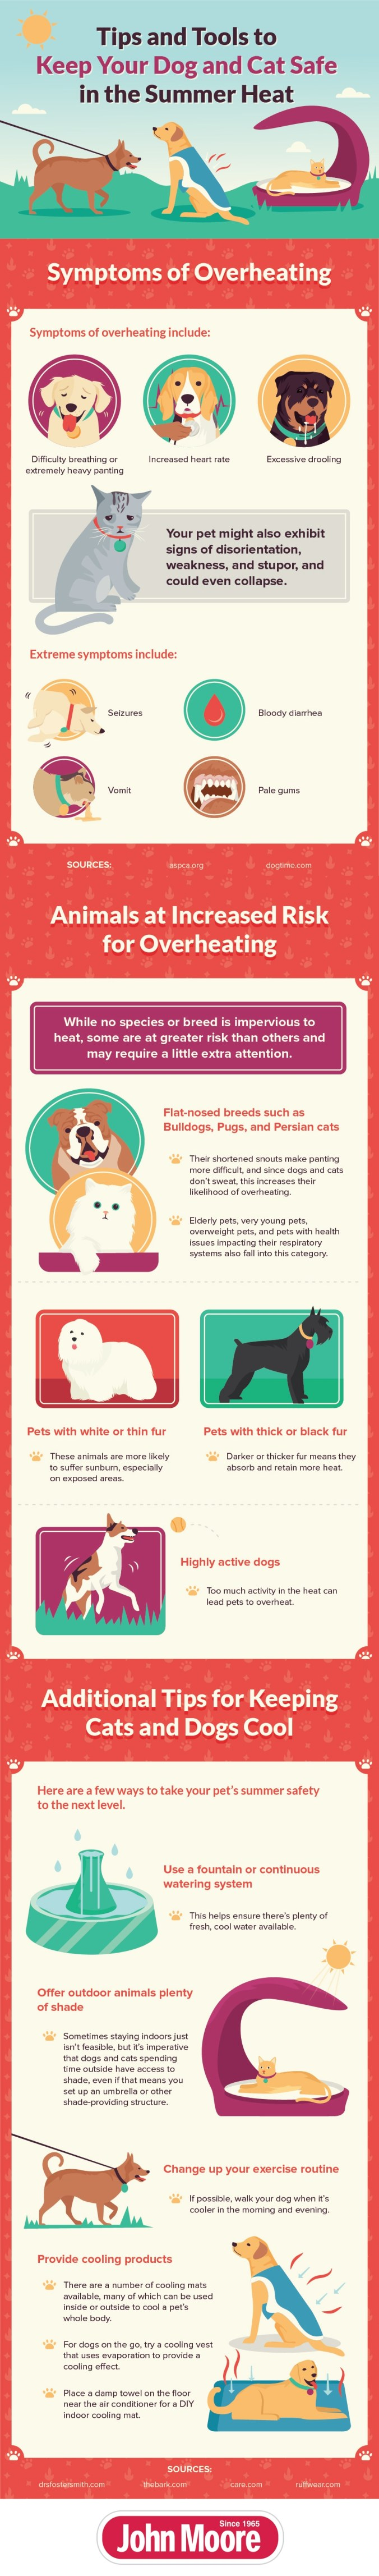 Keep-Pets-Cool-Infographic-by-John-Moore